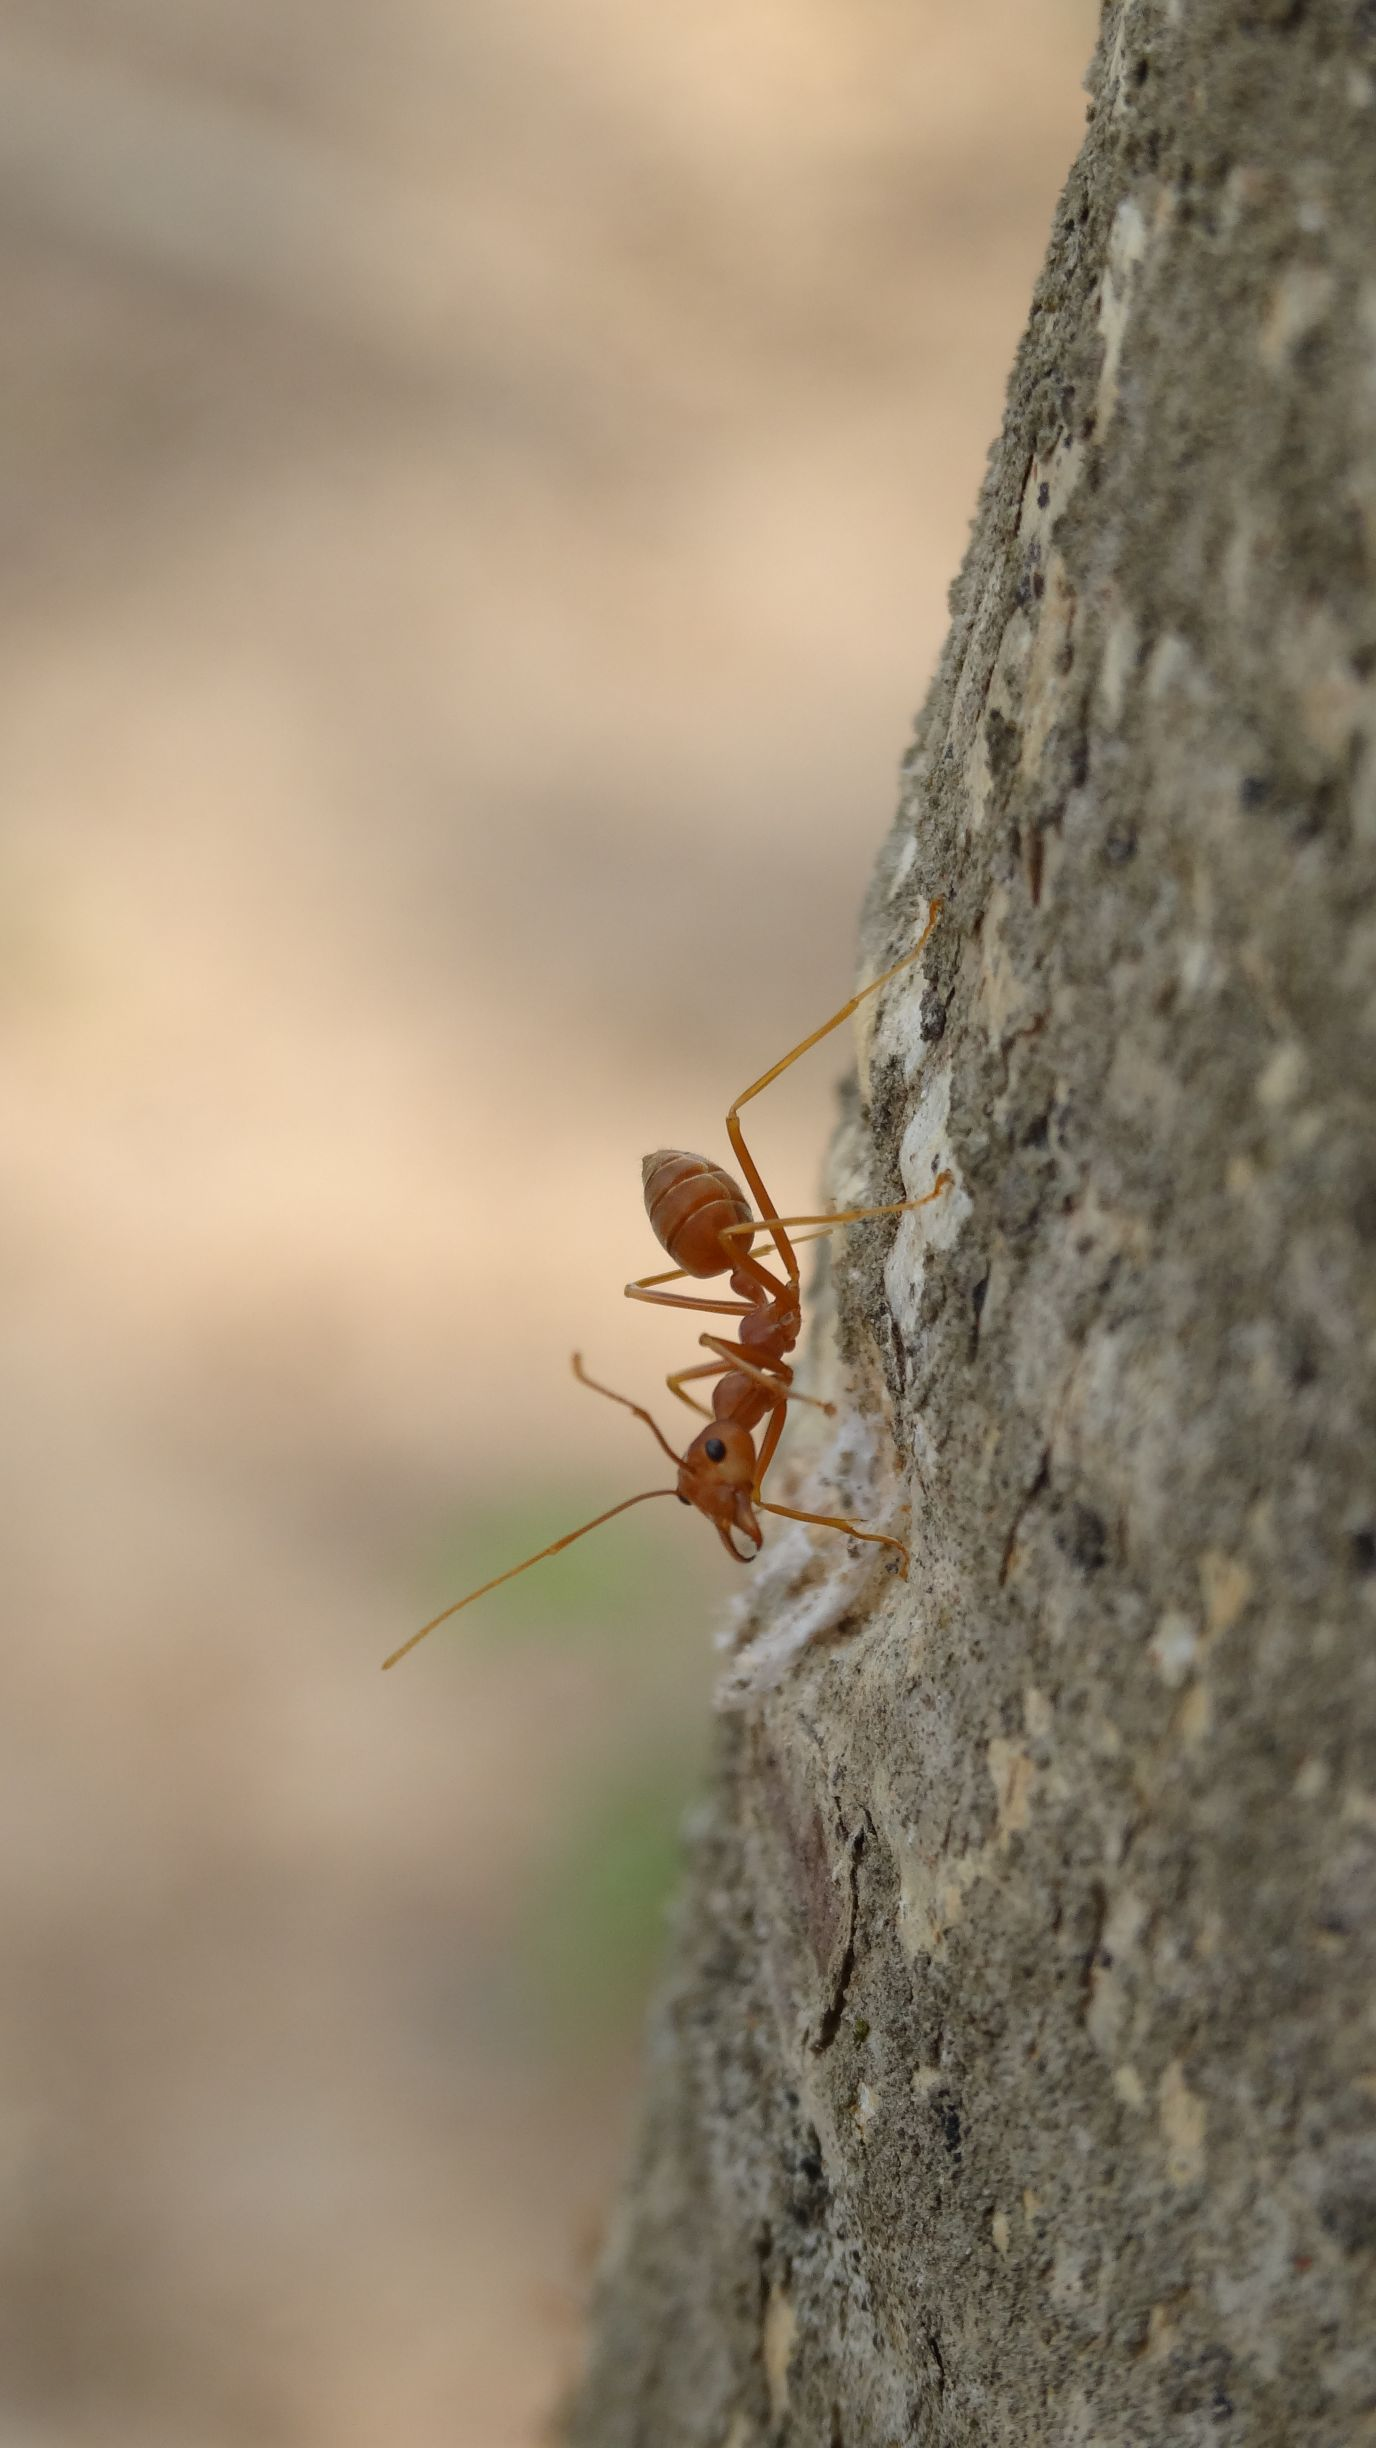 red ants bite, also in Cambodia!